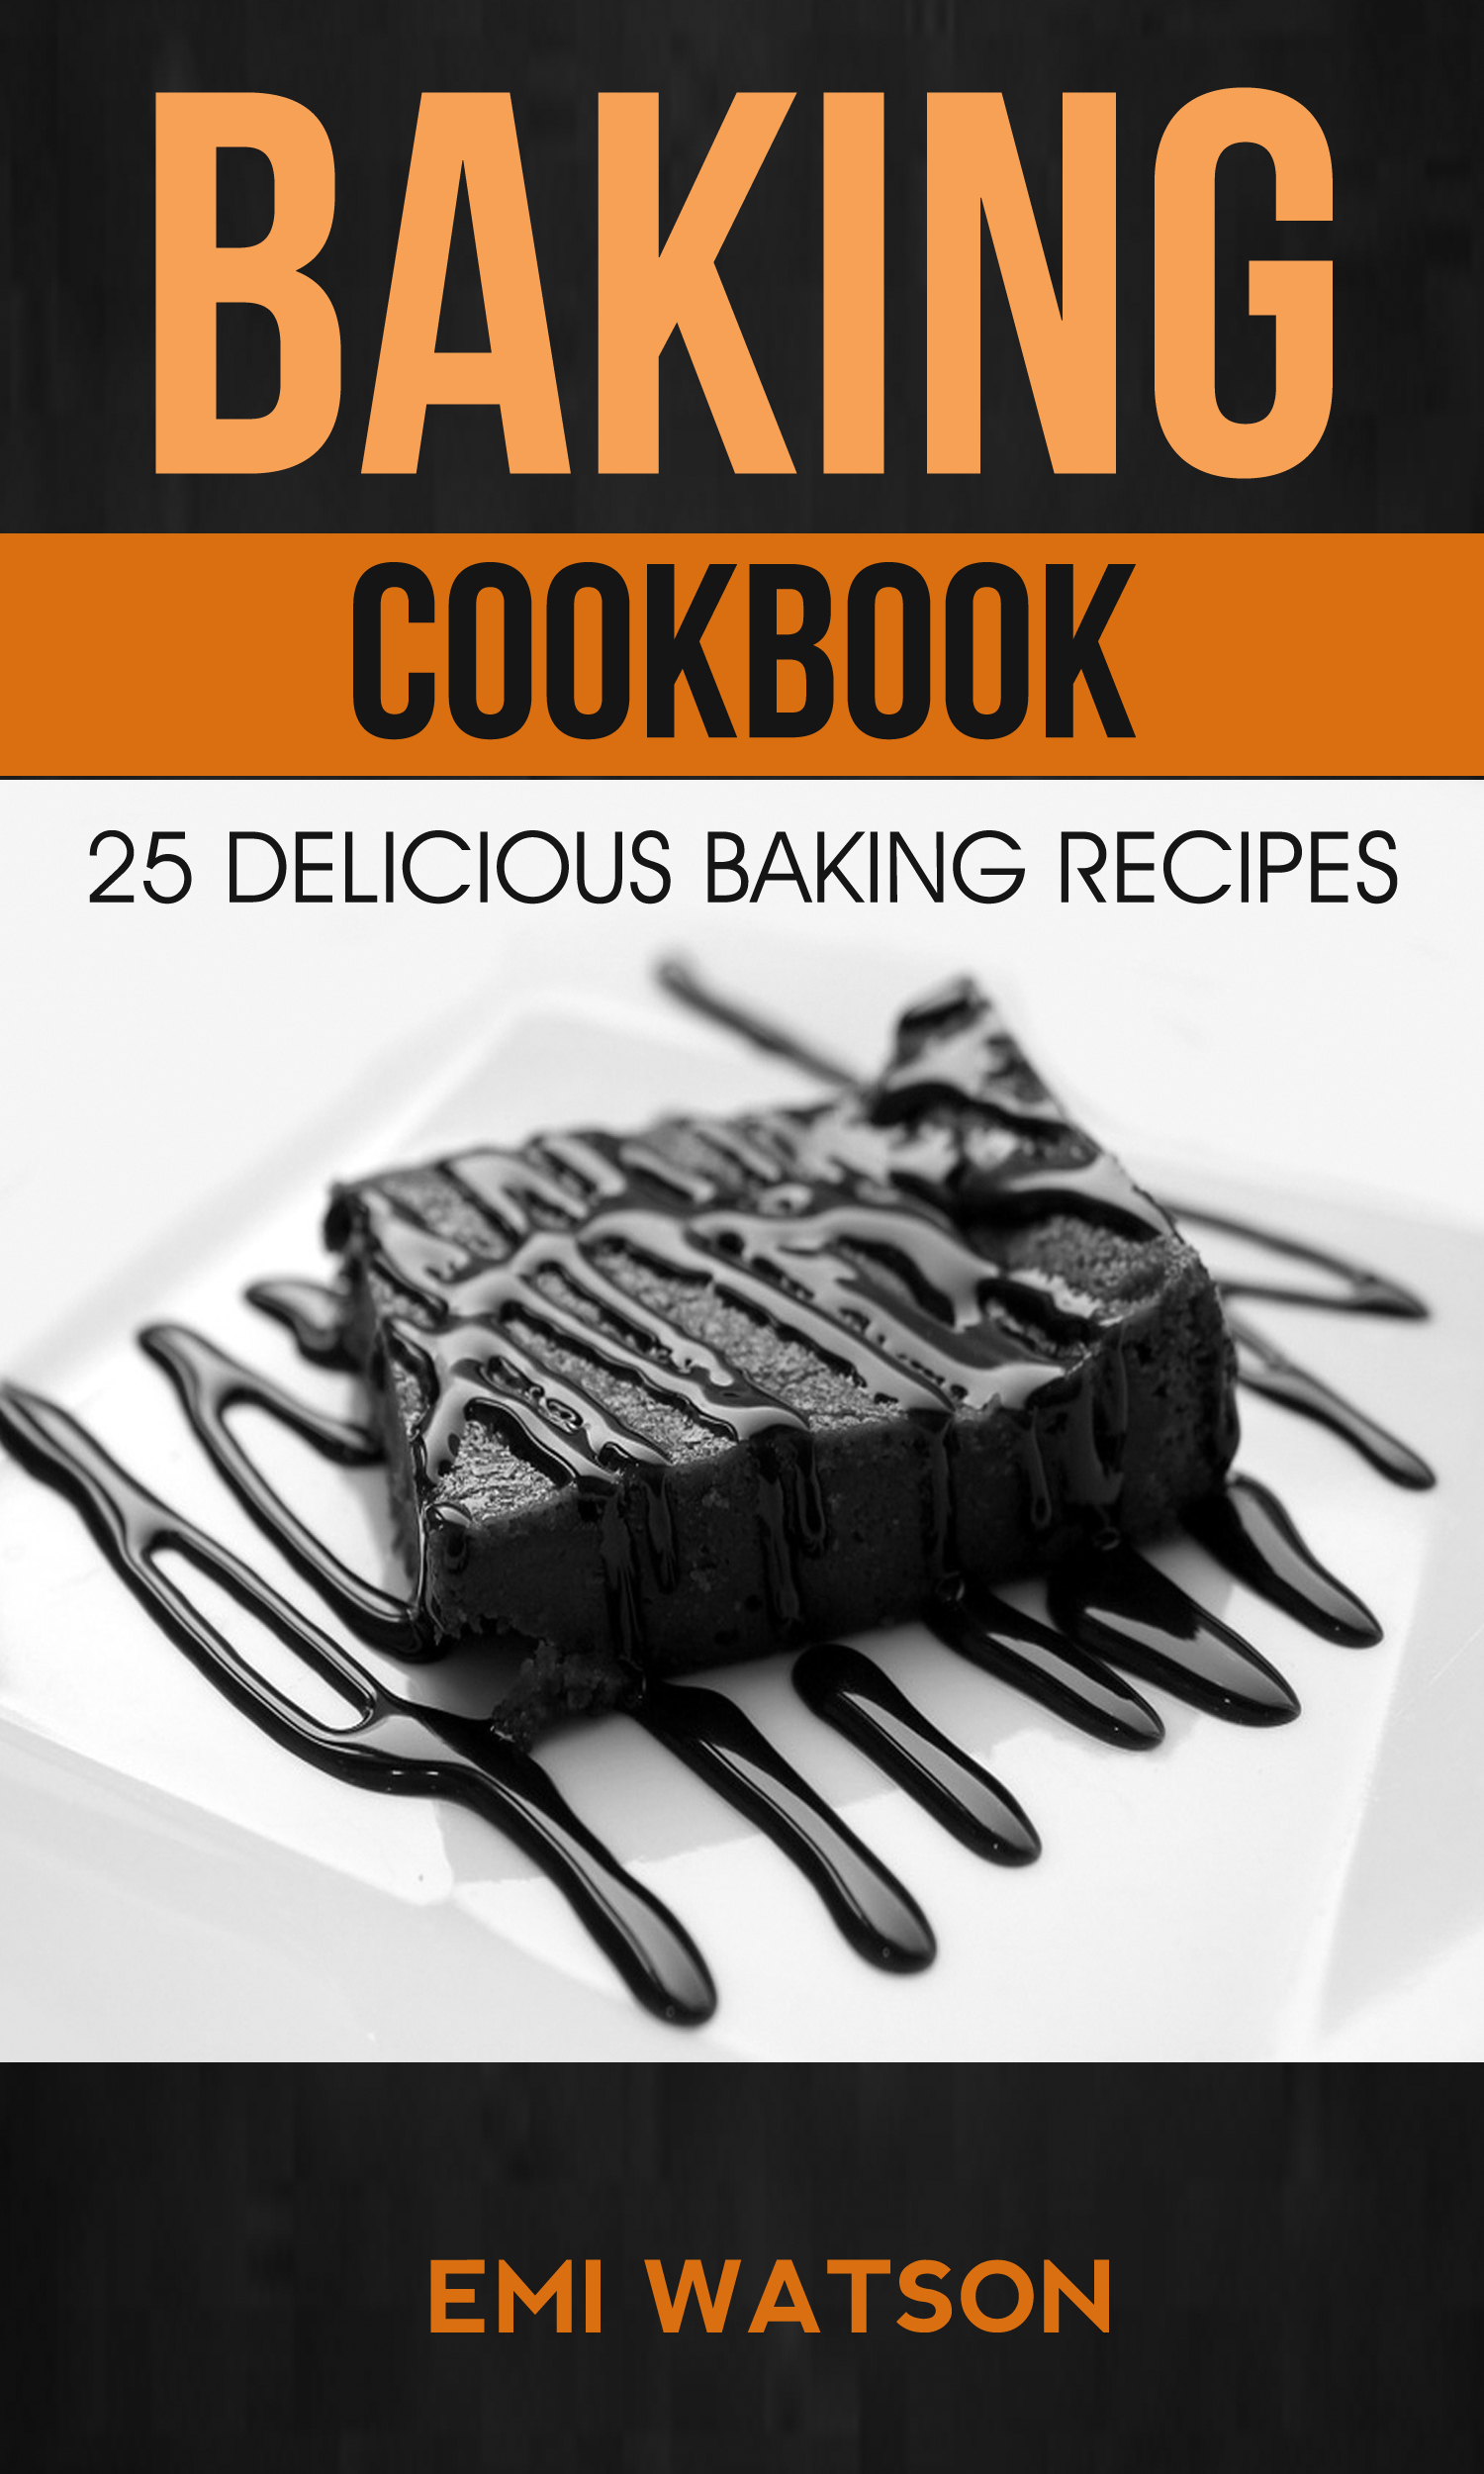 Baking cookbook: 25 delicious baking recipes